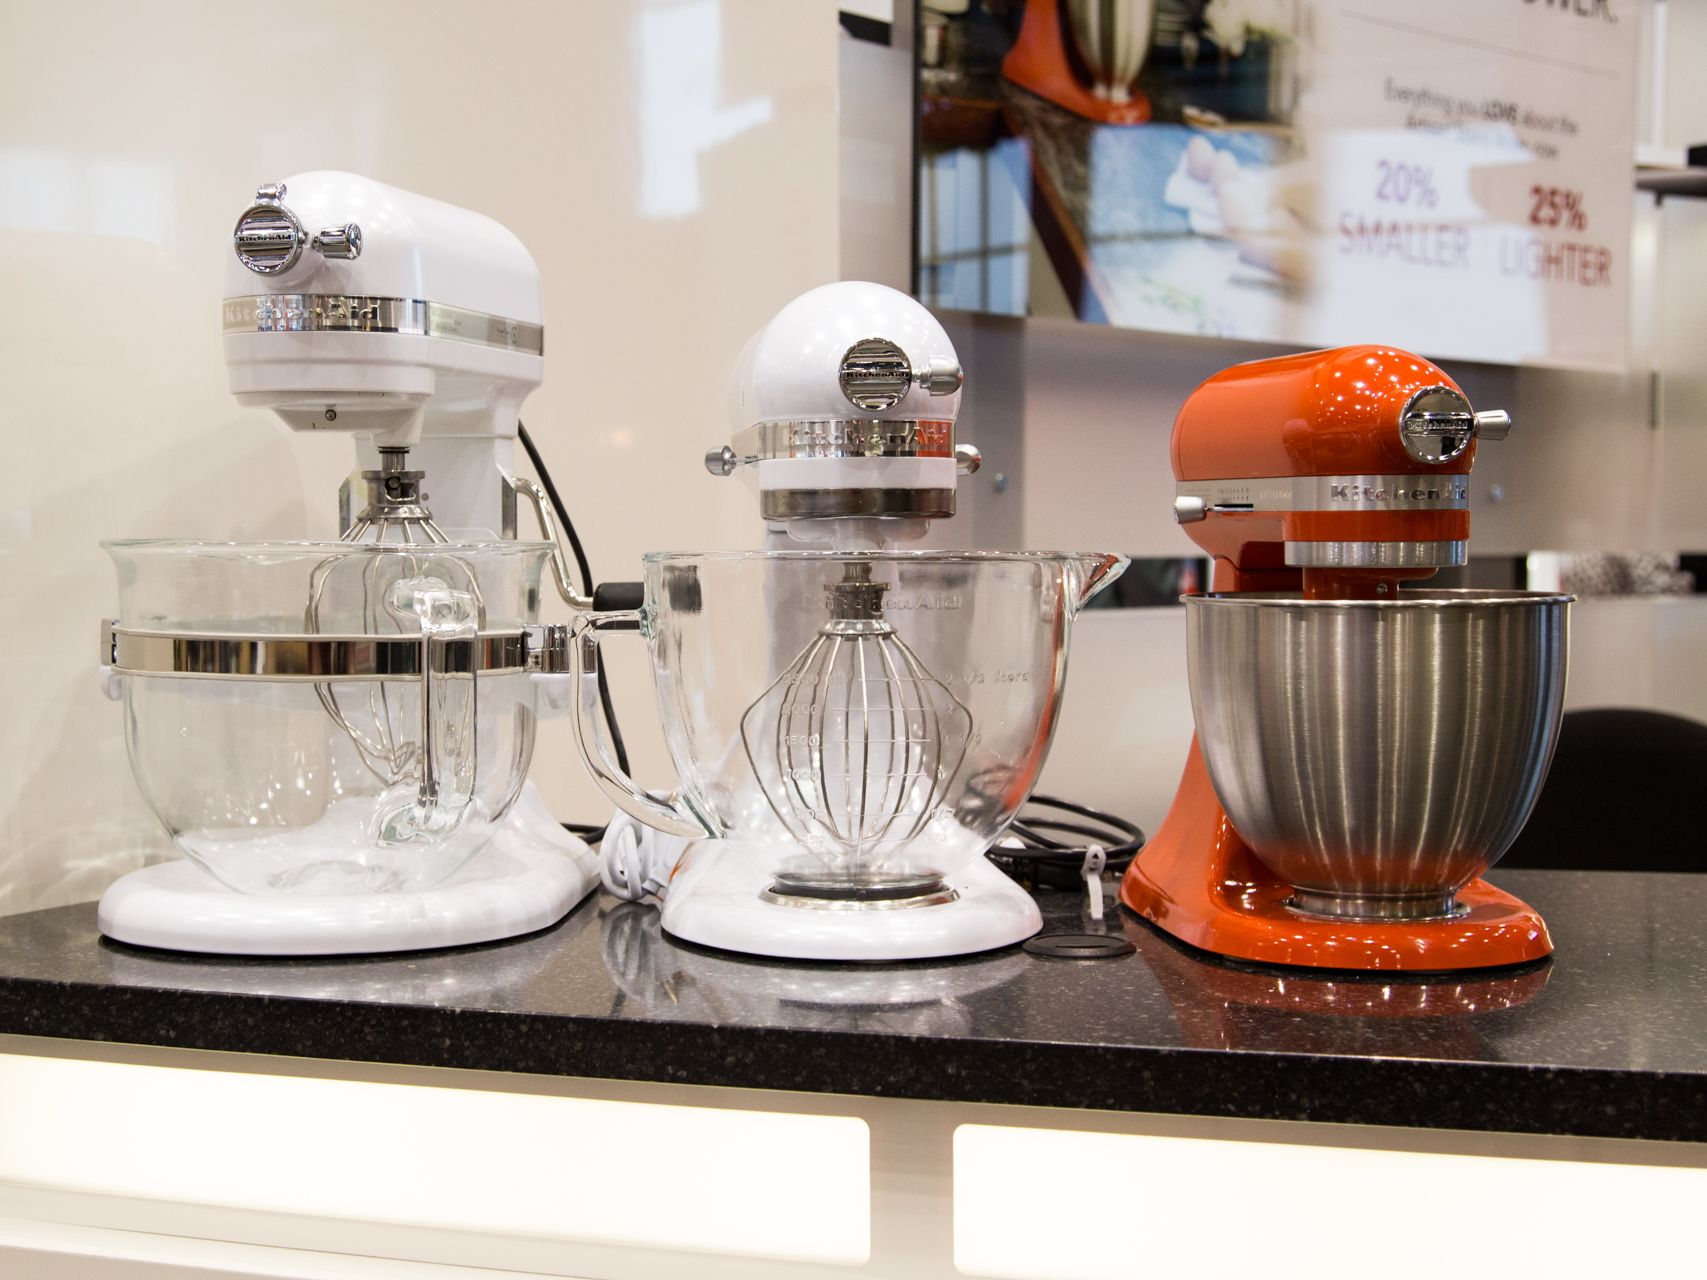 bloomingdales kitchen appliances